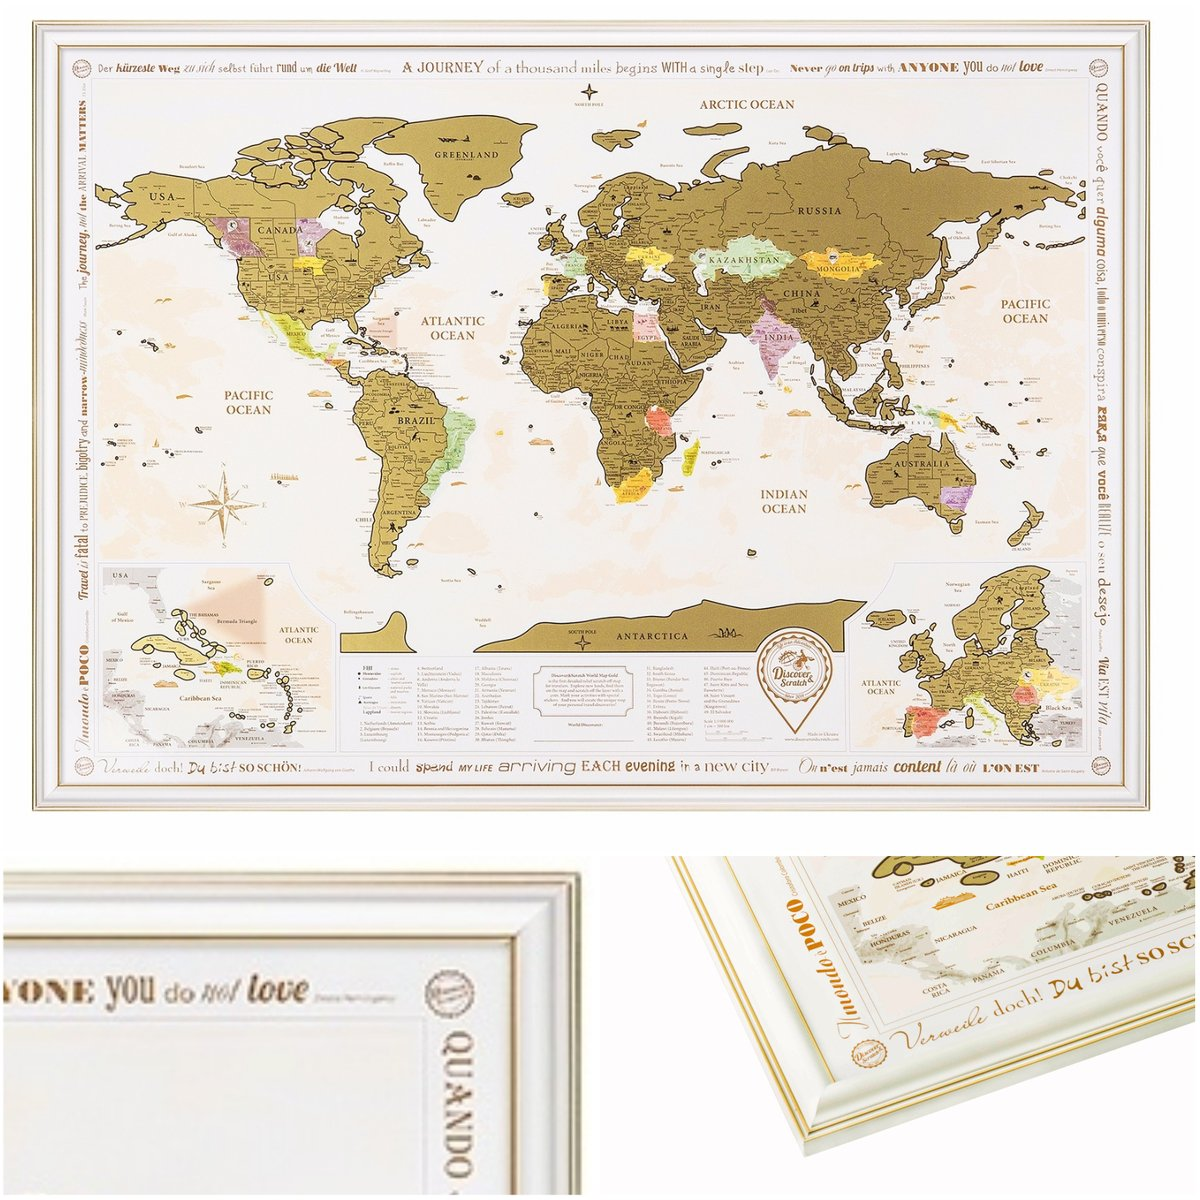 """NEW Framed World Map with Scratch off, Gold Edition! Golden Scratch. Large Size 26x36.2"""". Enlarged Europe and Caribbean Islands. Place for Your Sign. (Map in White-Golden Frame)"""